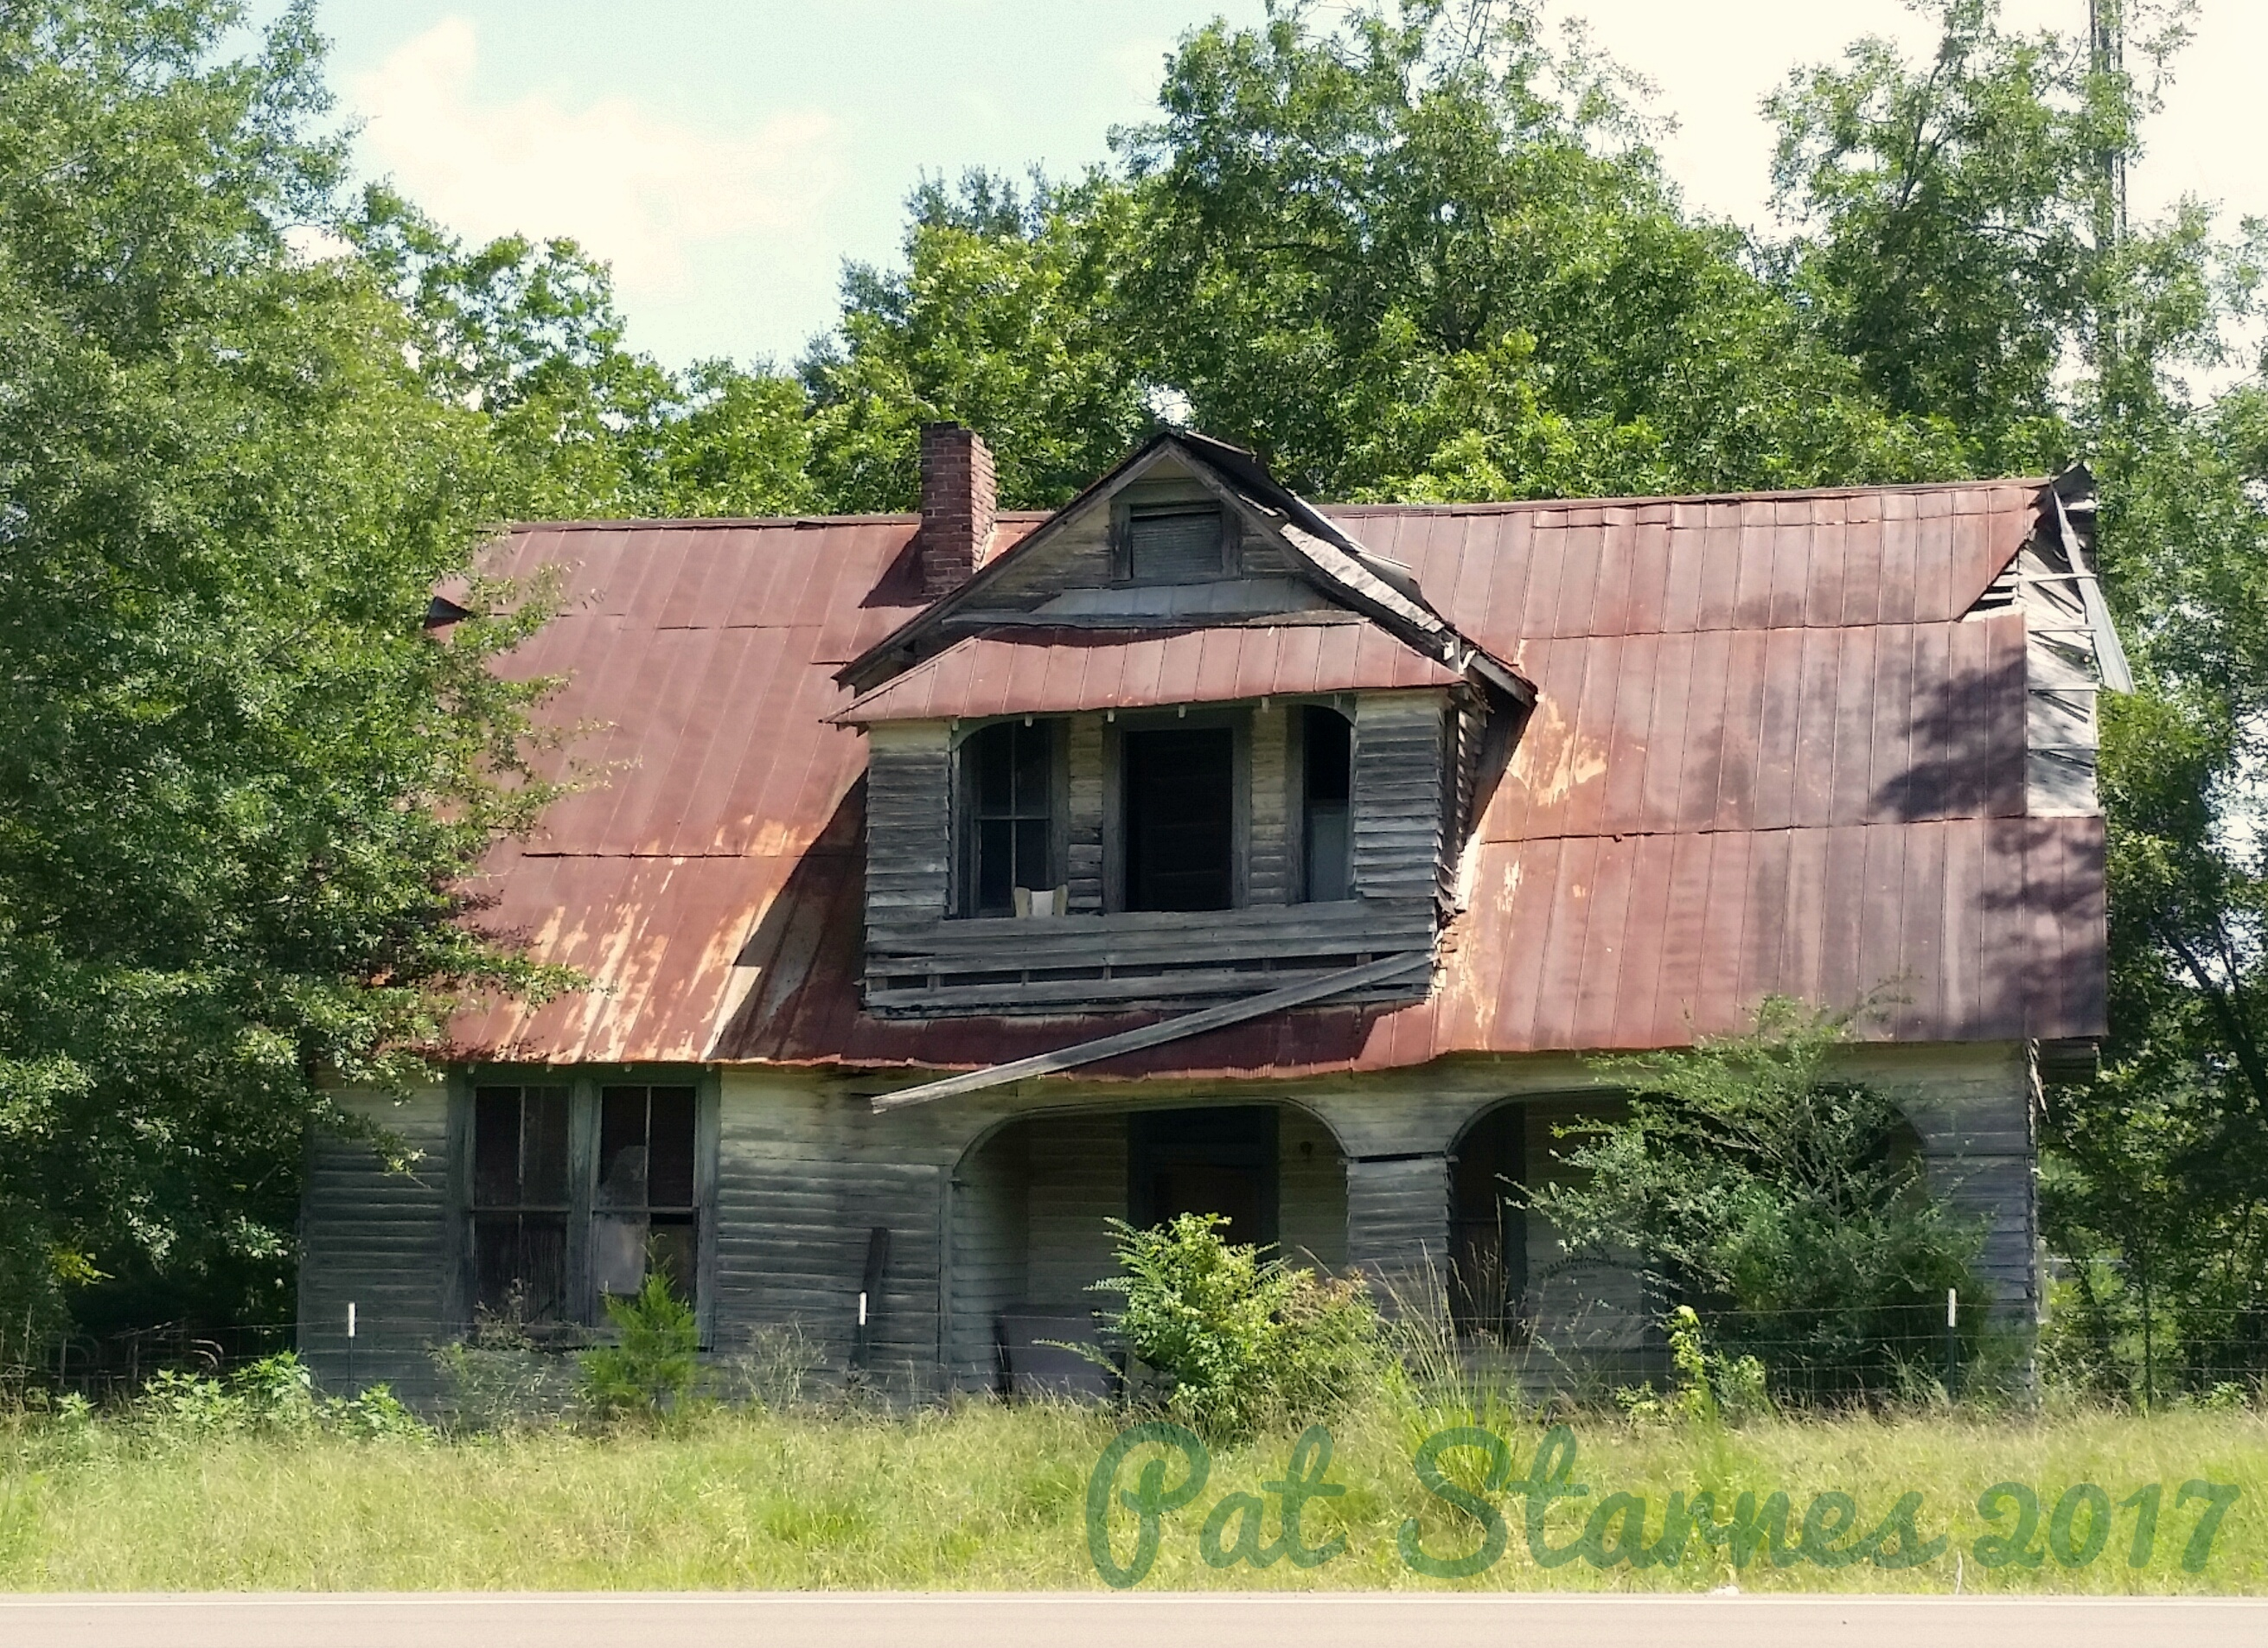 Friday Photos This Old House by Pat Starnes